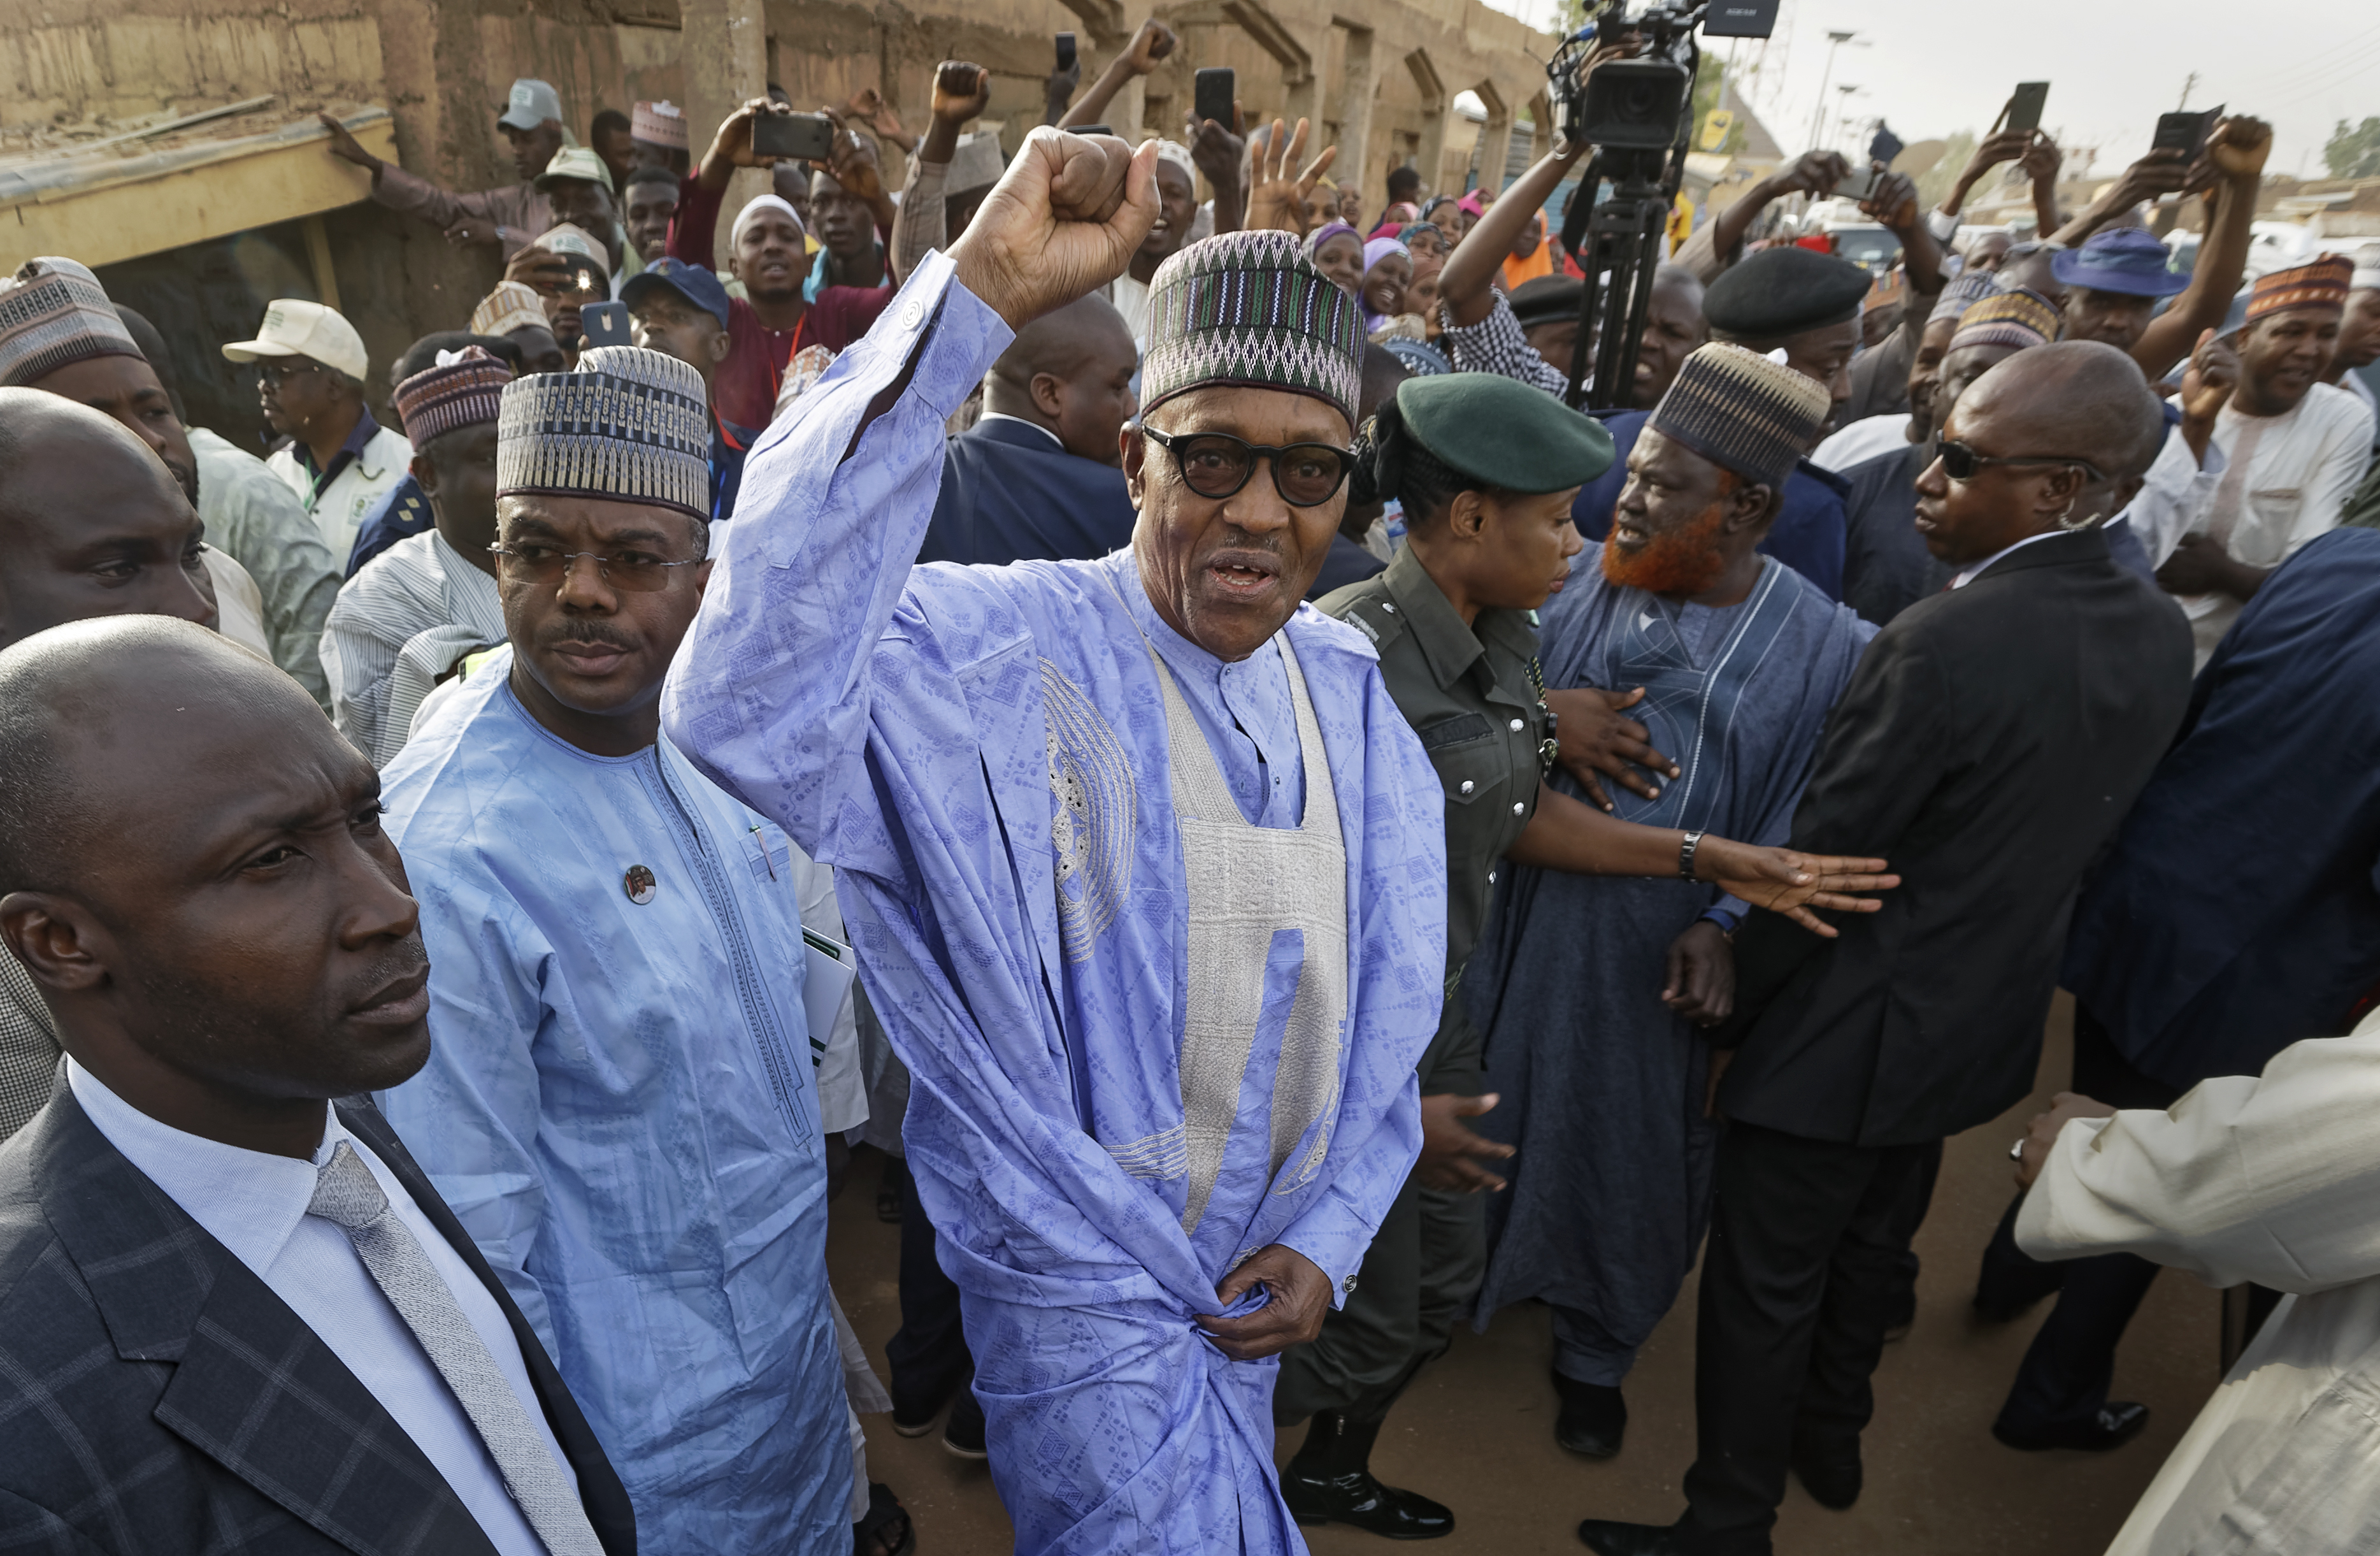 Nigeria's President Muhammadu Buhari gestures to supporters after casting his vote in his hometown of Daura, northern Nigeria, Saturday, Feb. 23, 2019. Nigerians are going to the polls for a presidential election Saturday, one week after a surprise delay for Africa's largest democracy. (AP Photo/Ben Curtis)